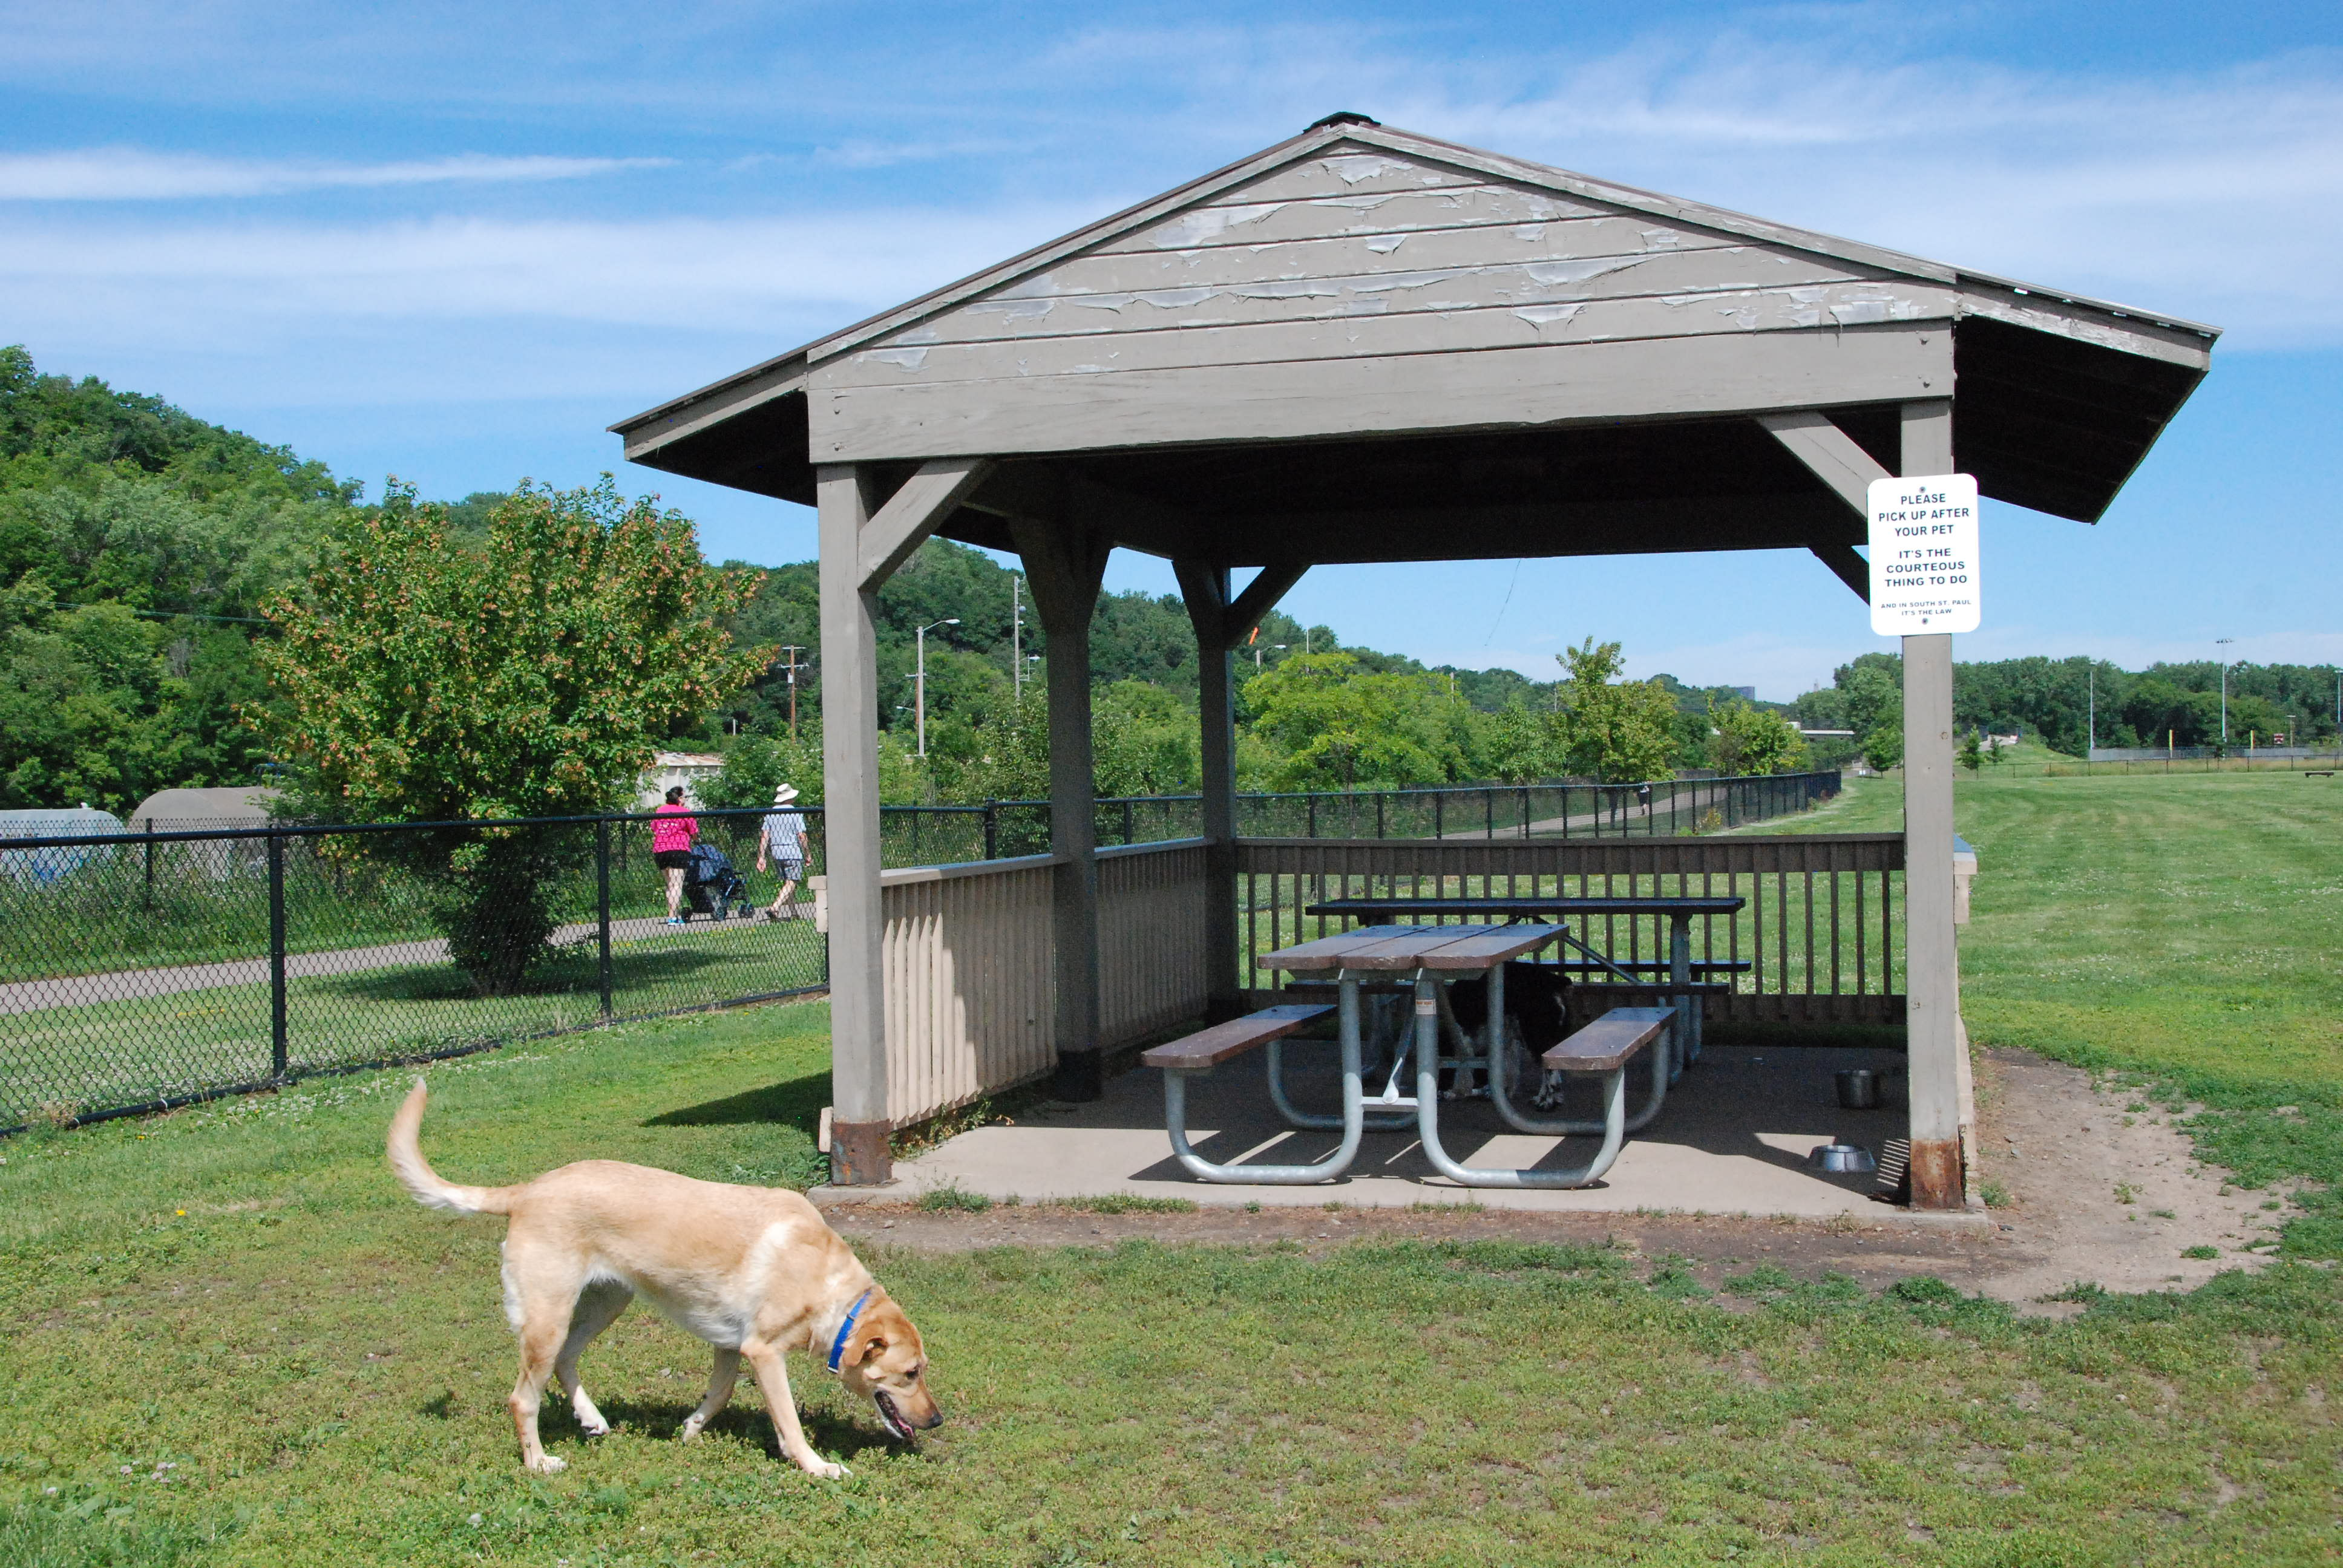 Dog at Picnic Shelter